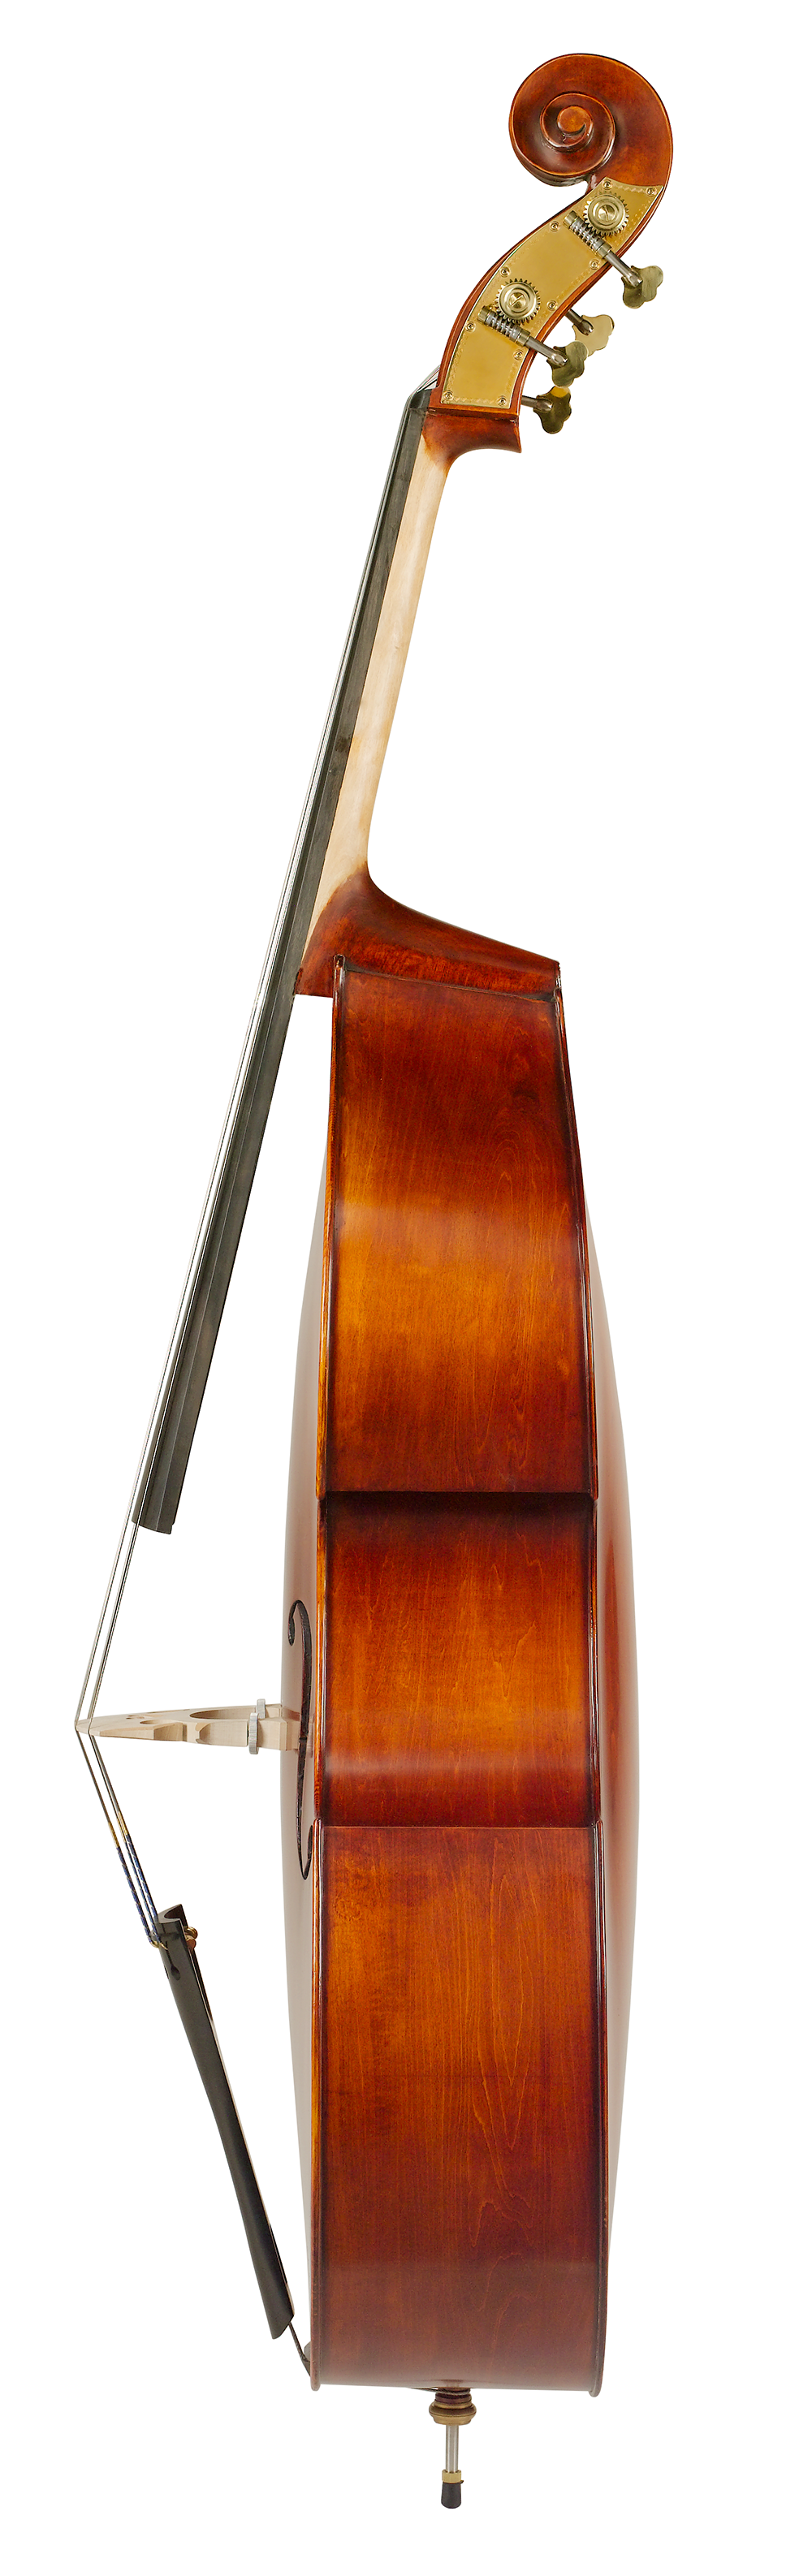 Strobel MB-300 Recital Series Double Bass Outfit 3/4